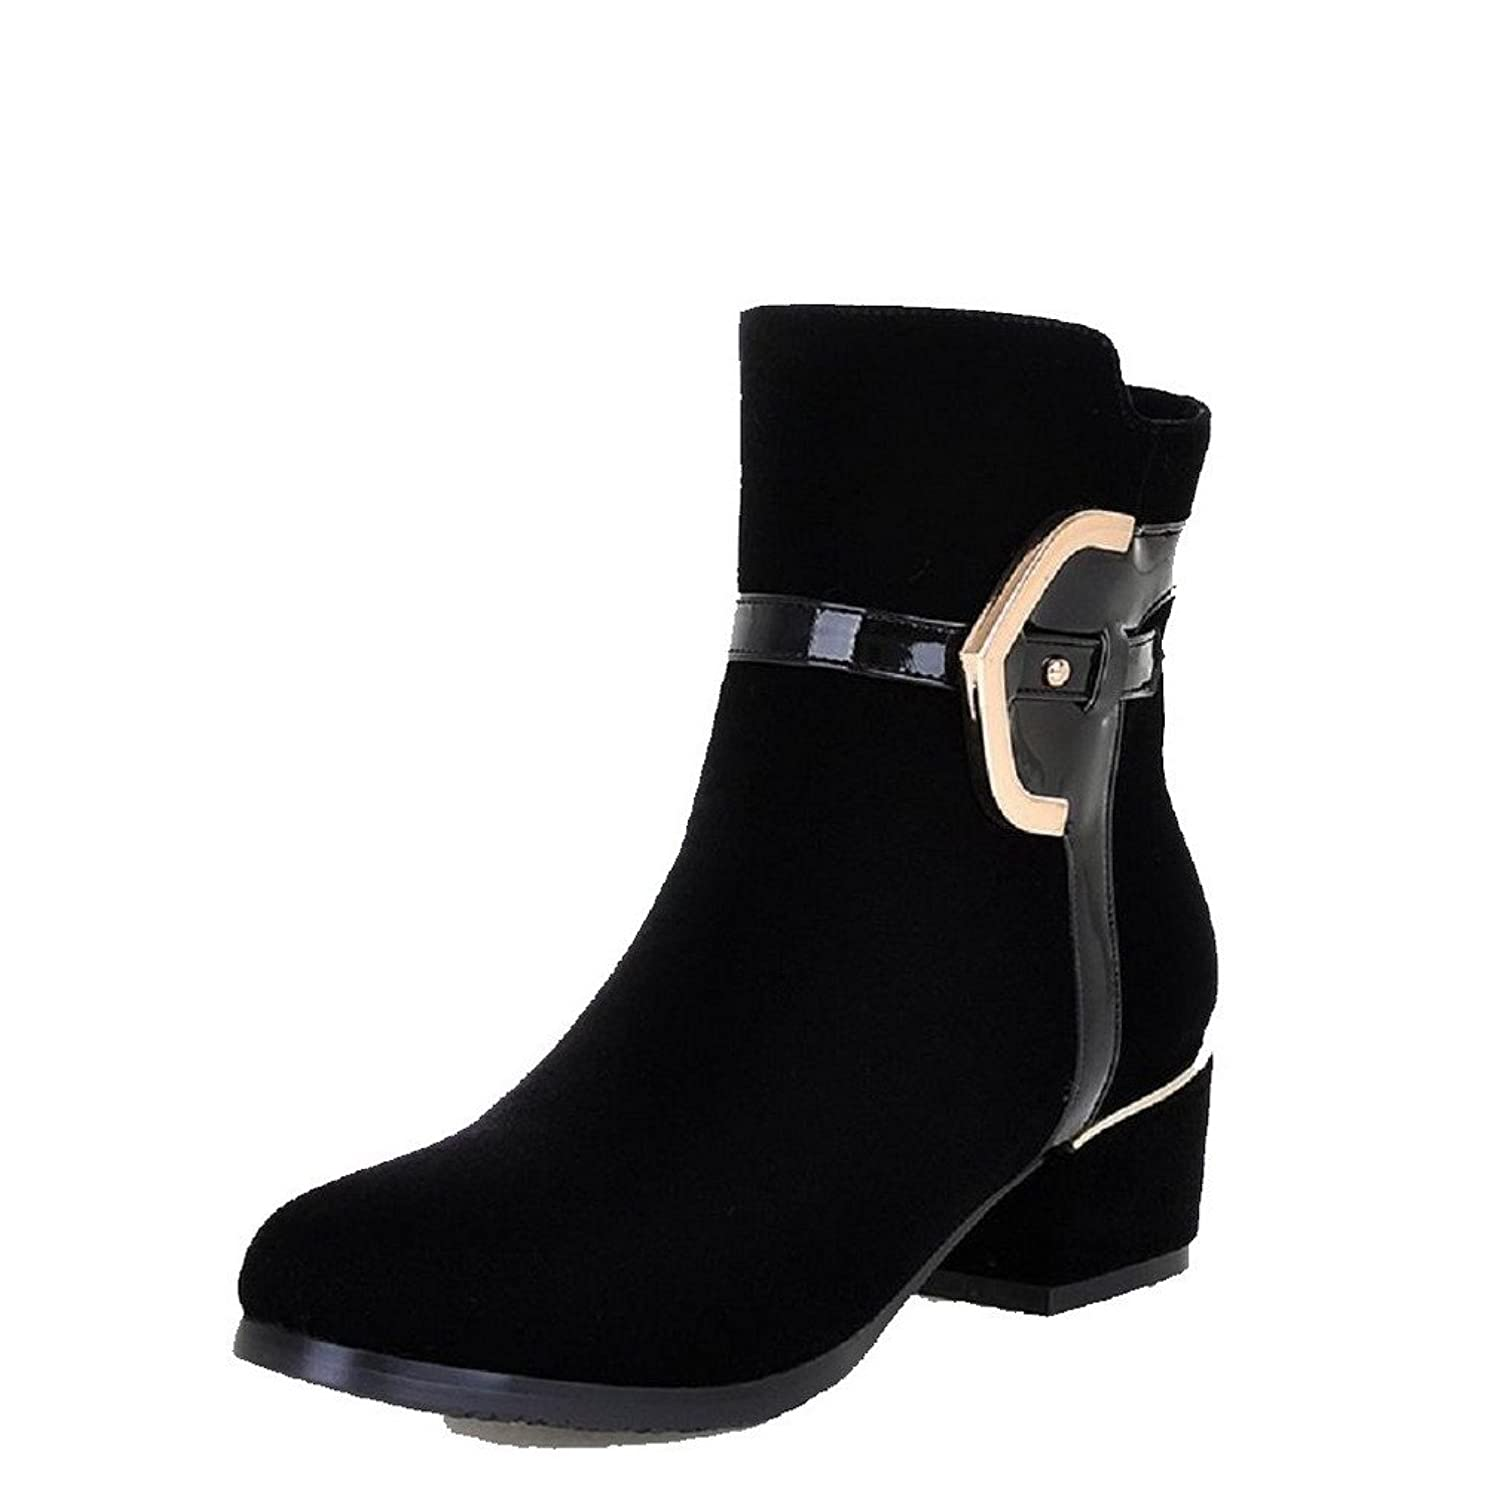 MayMeenth Women's Round Closed Toe Kitten-Heels Frosted Low-top Solid Boots